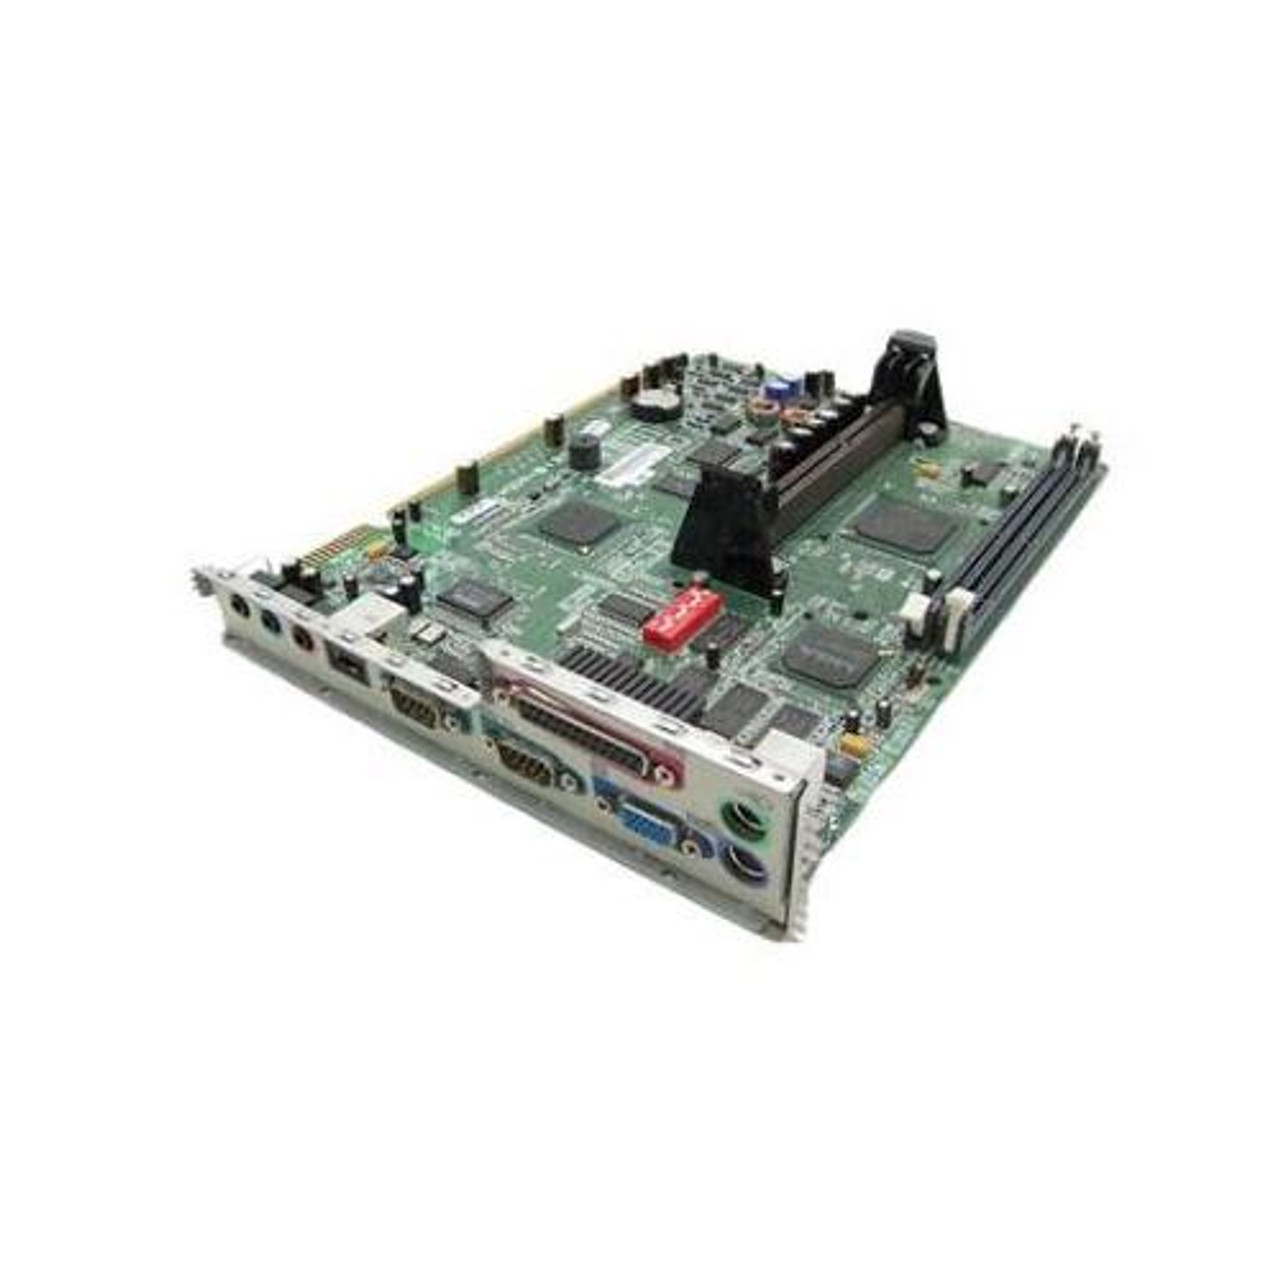 MATROX MGA-G200 AGP WINDOWS XP DRIVER